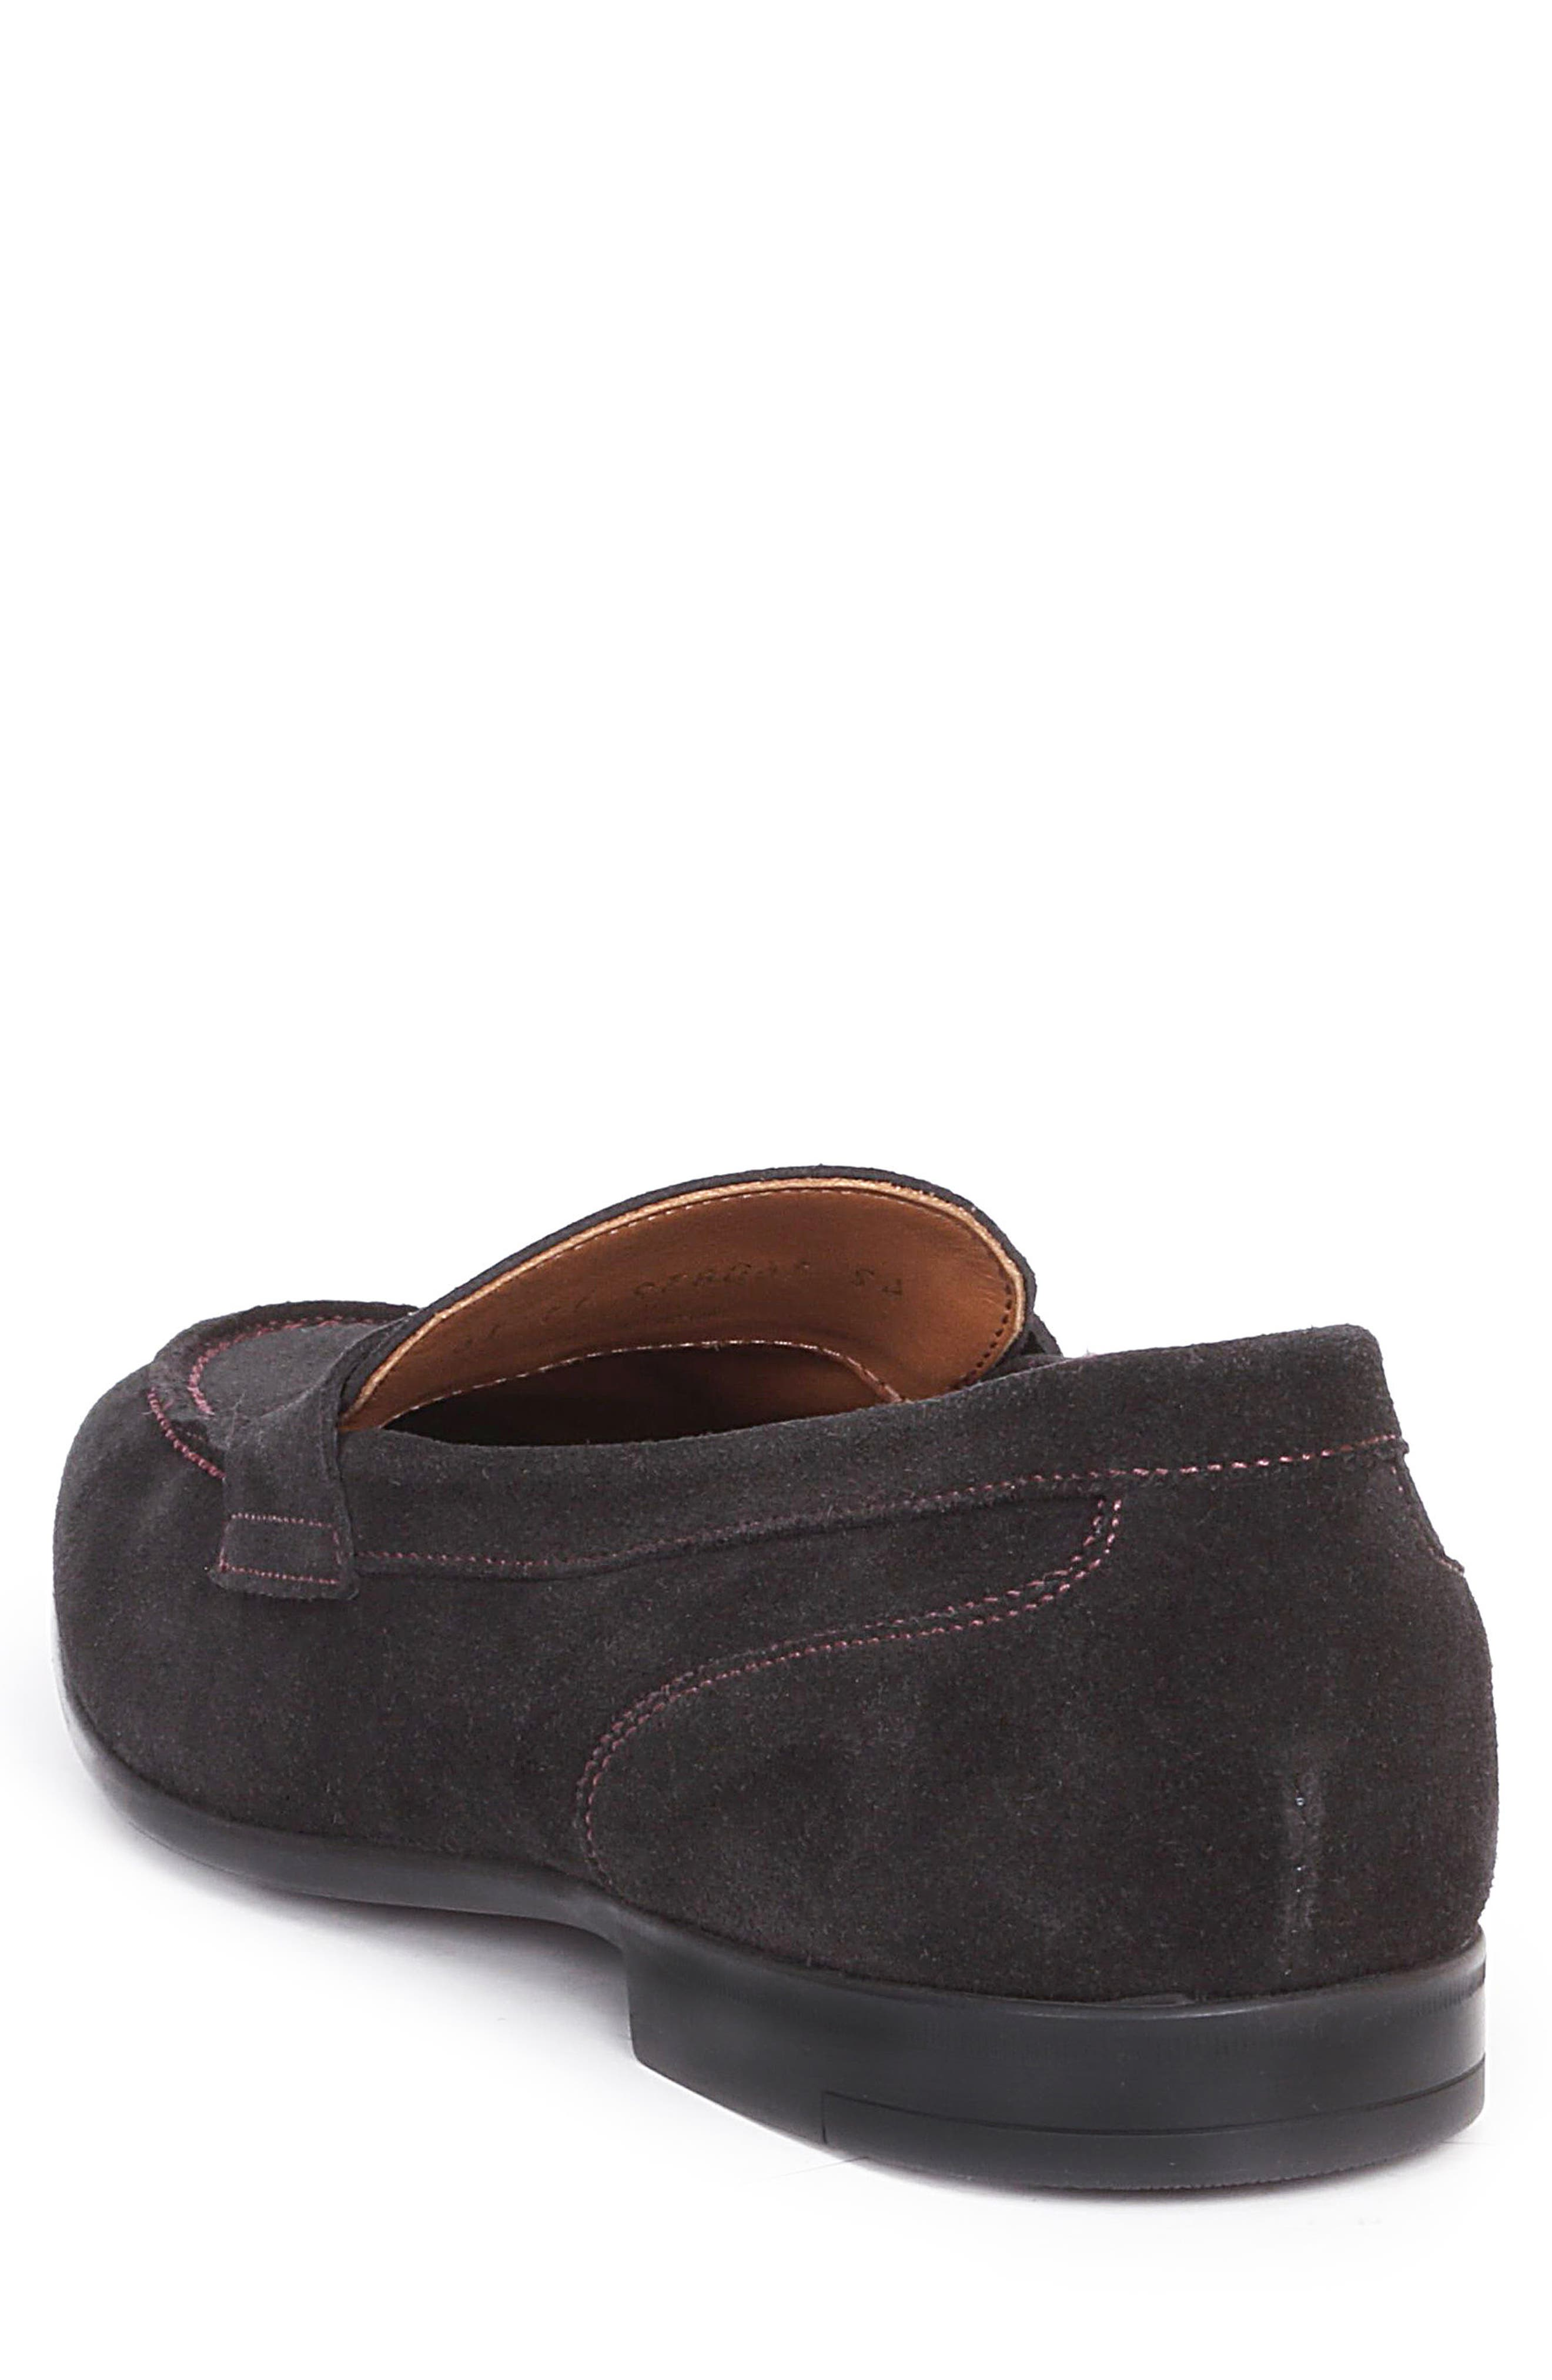 Silas Penny Loafer,                             Alternate thumbnail 3, color,                             Navy